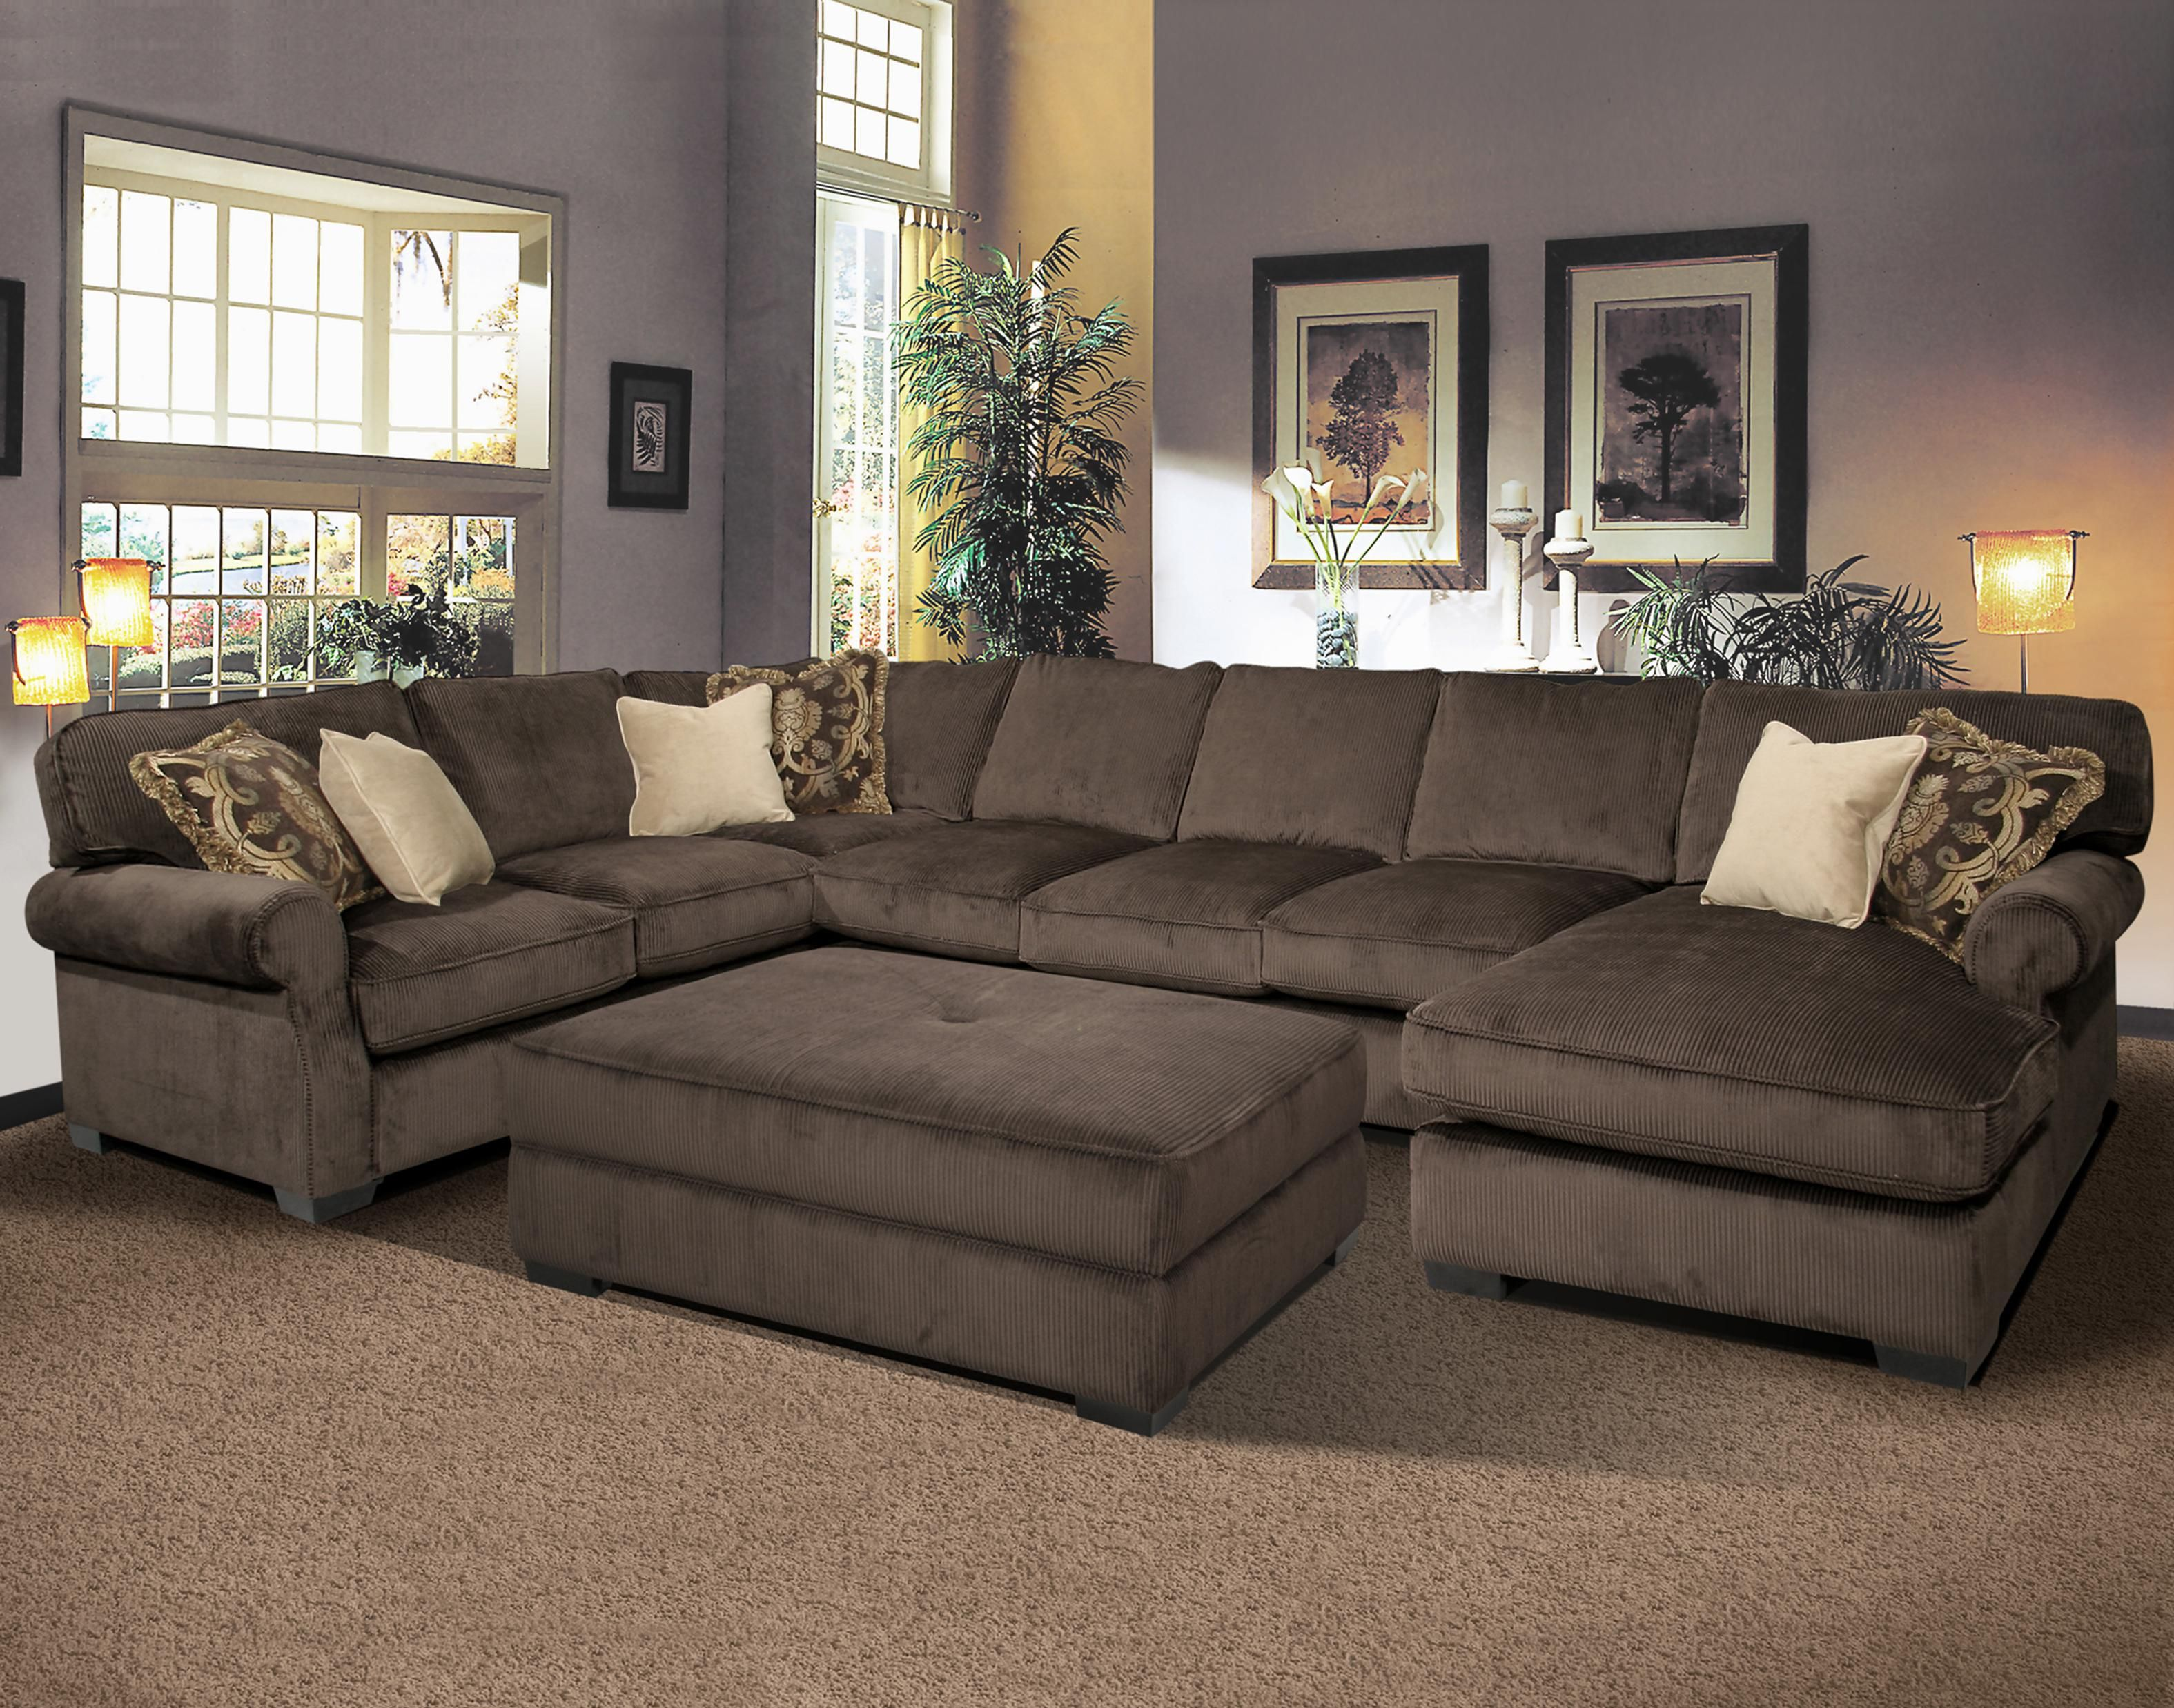 Furniture Living Room Seating Chaises Brown